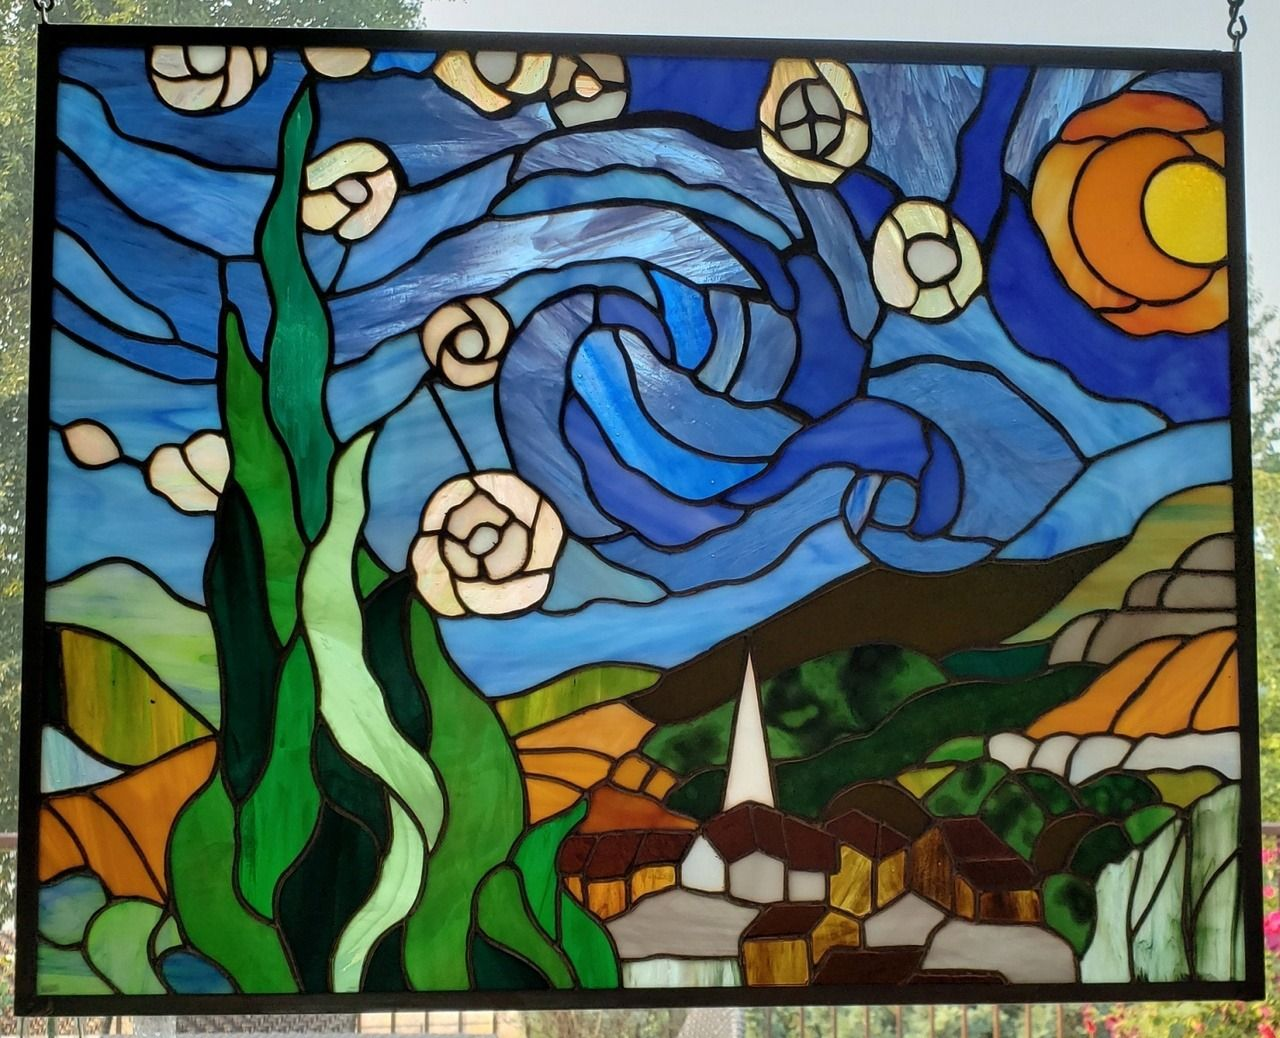 Starry Night Stained Glass Art Vosburg Stained Glass on Etsy See our or Glass tags